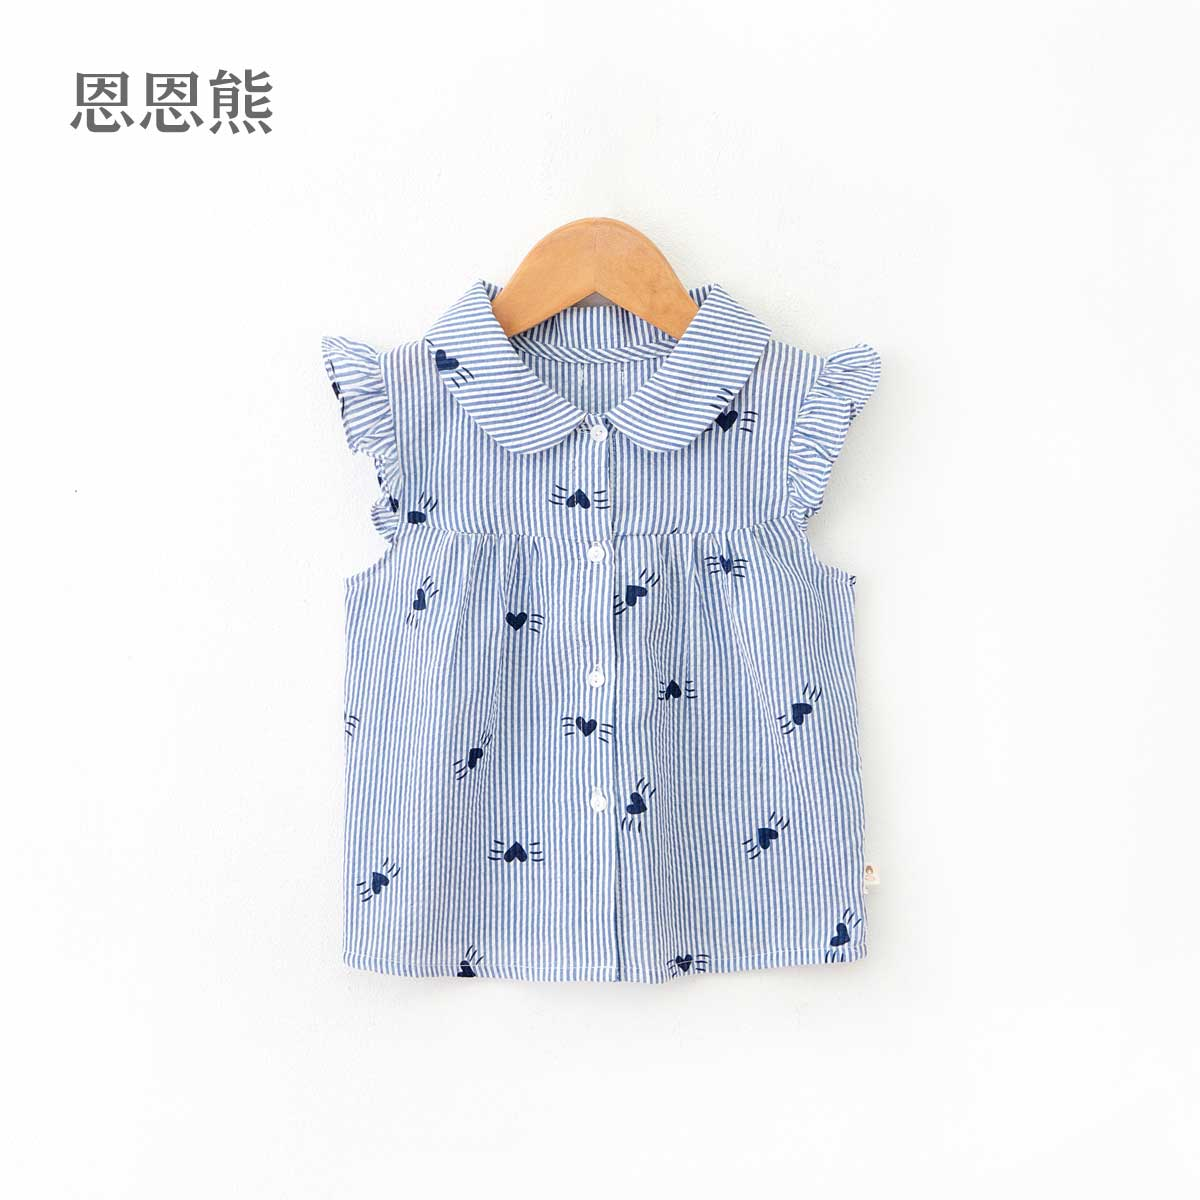 En Eun bear girls striped fly sleeve T-shirt summer 2019 new female baby 1 foreign 3 years old 5 lapel printed shirt